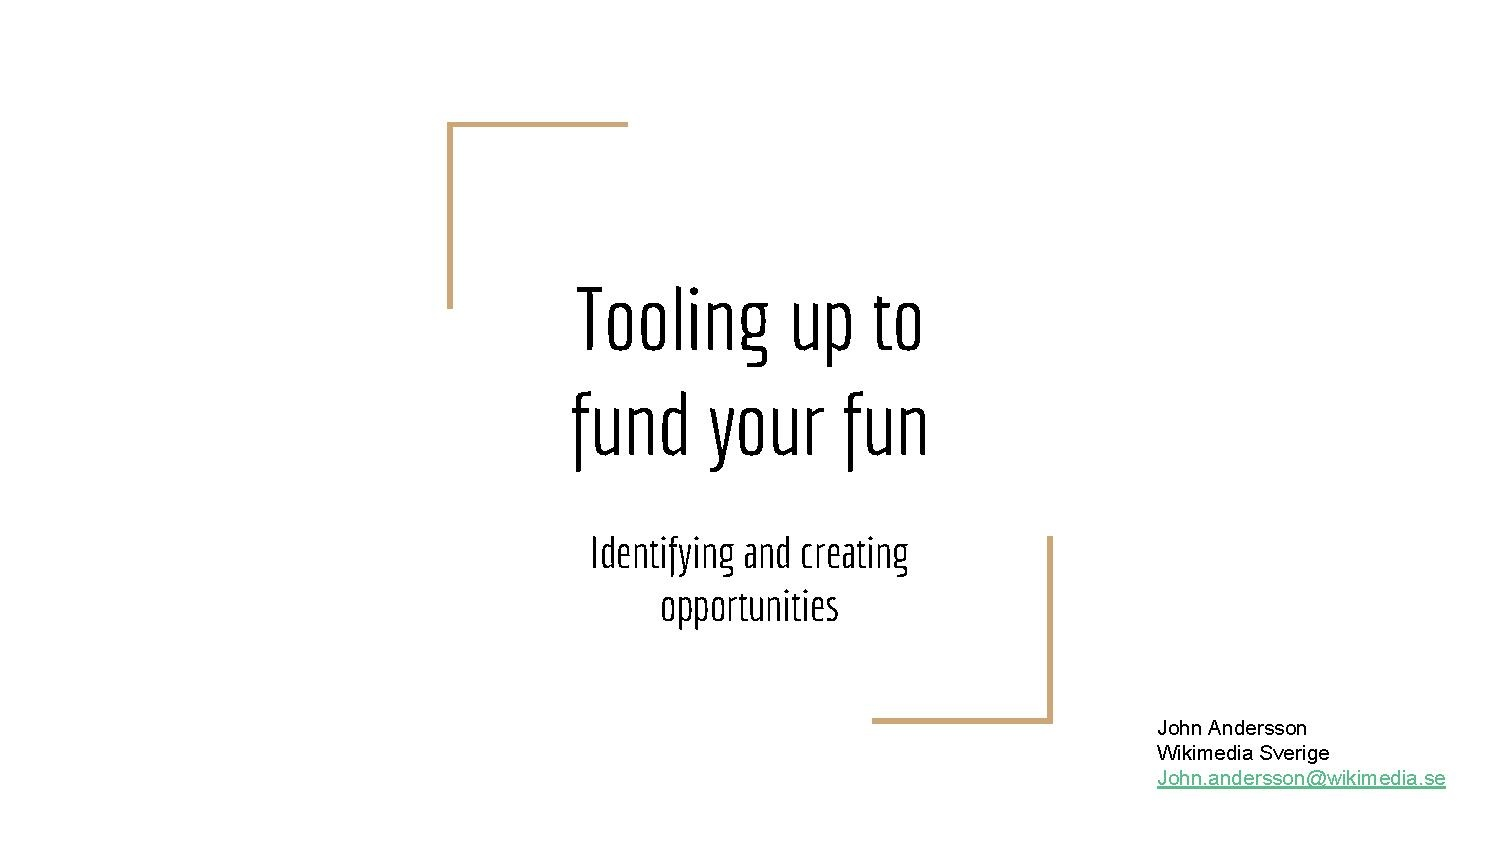 Tooling up to fund your fun, 5 min presentation at Wikimedia Conference 2016.pdf